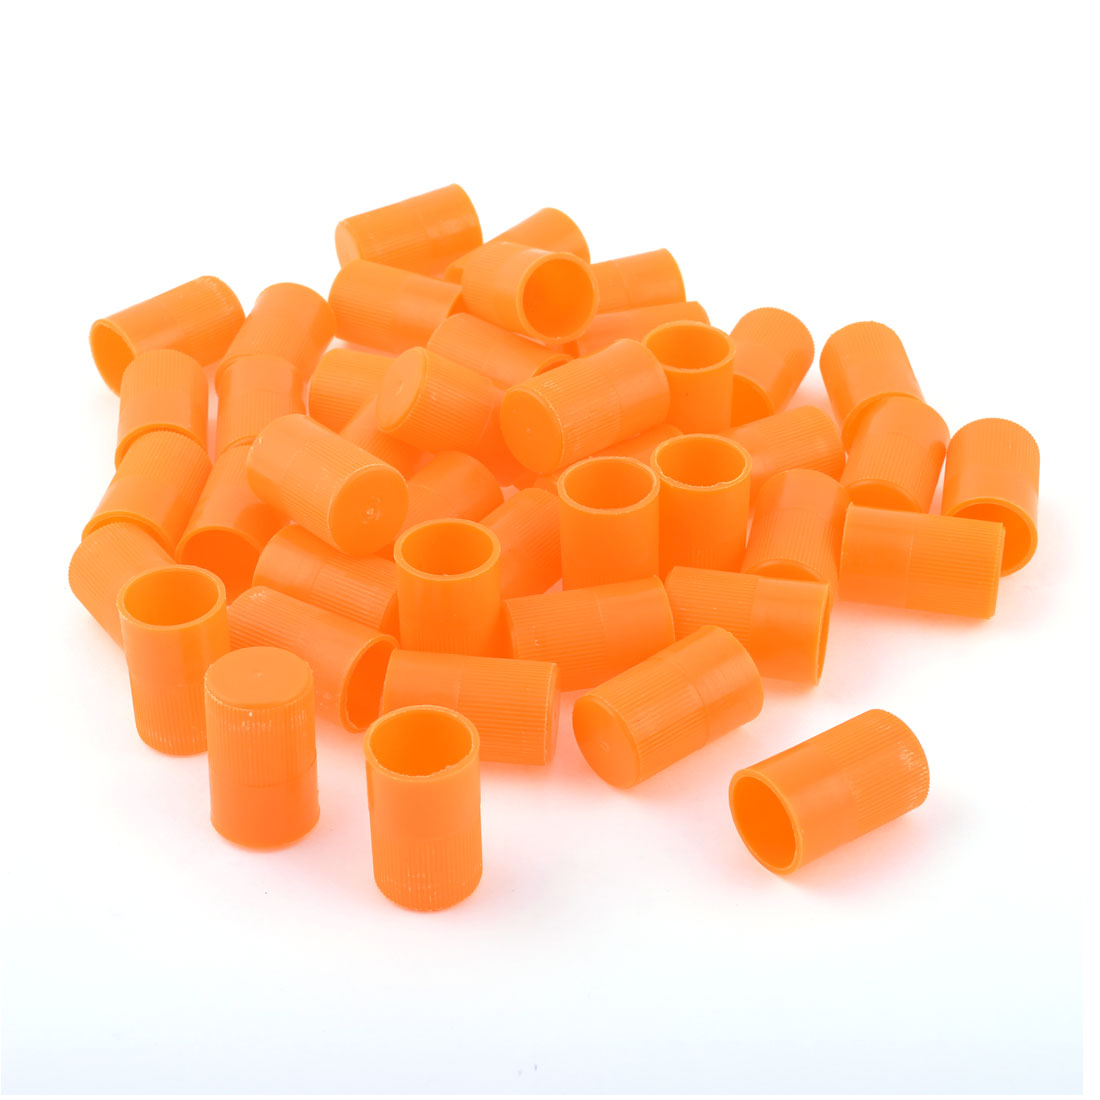 Unique Bargains 50 PCS 35mm x 18mm Textured Orange Plastic Test Tube Cap Cover